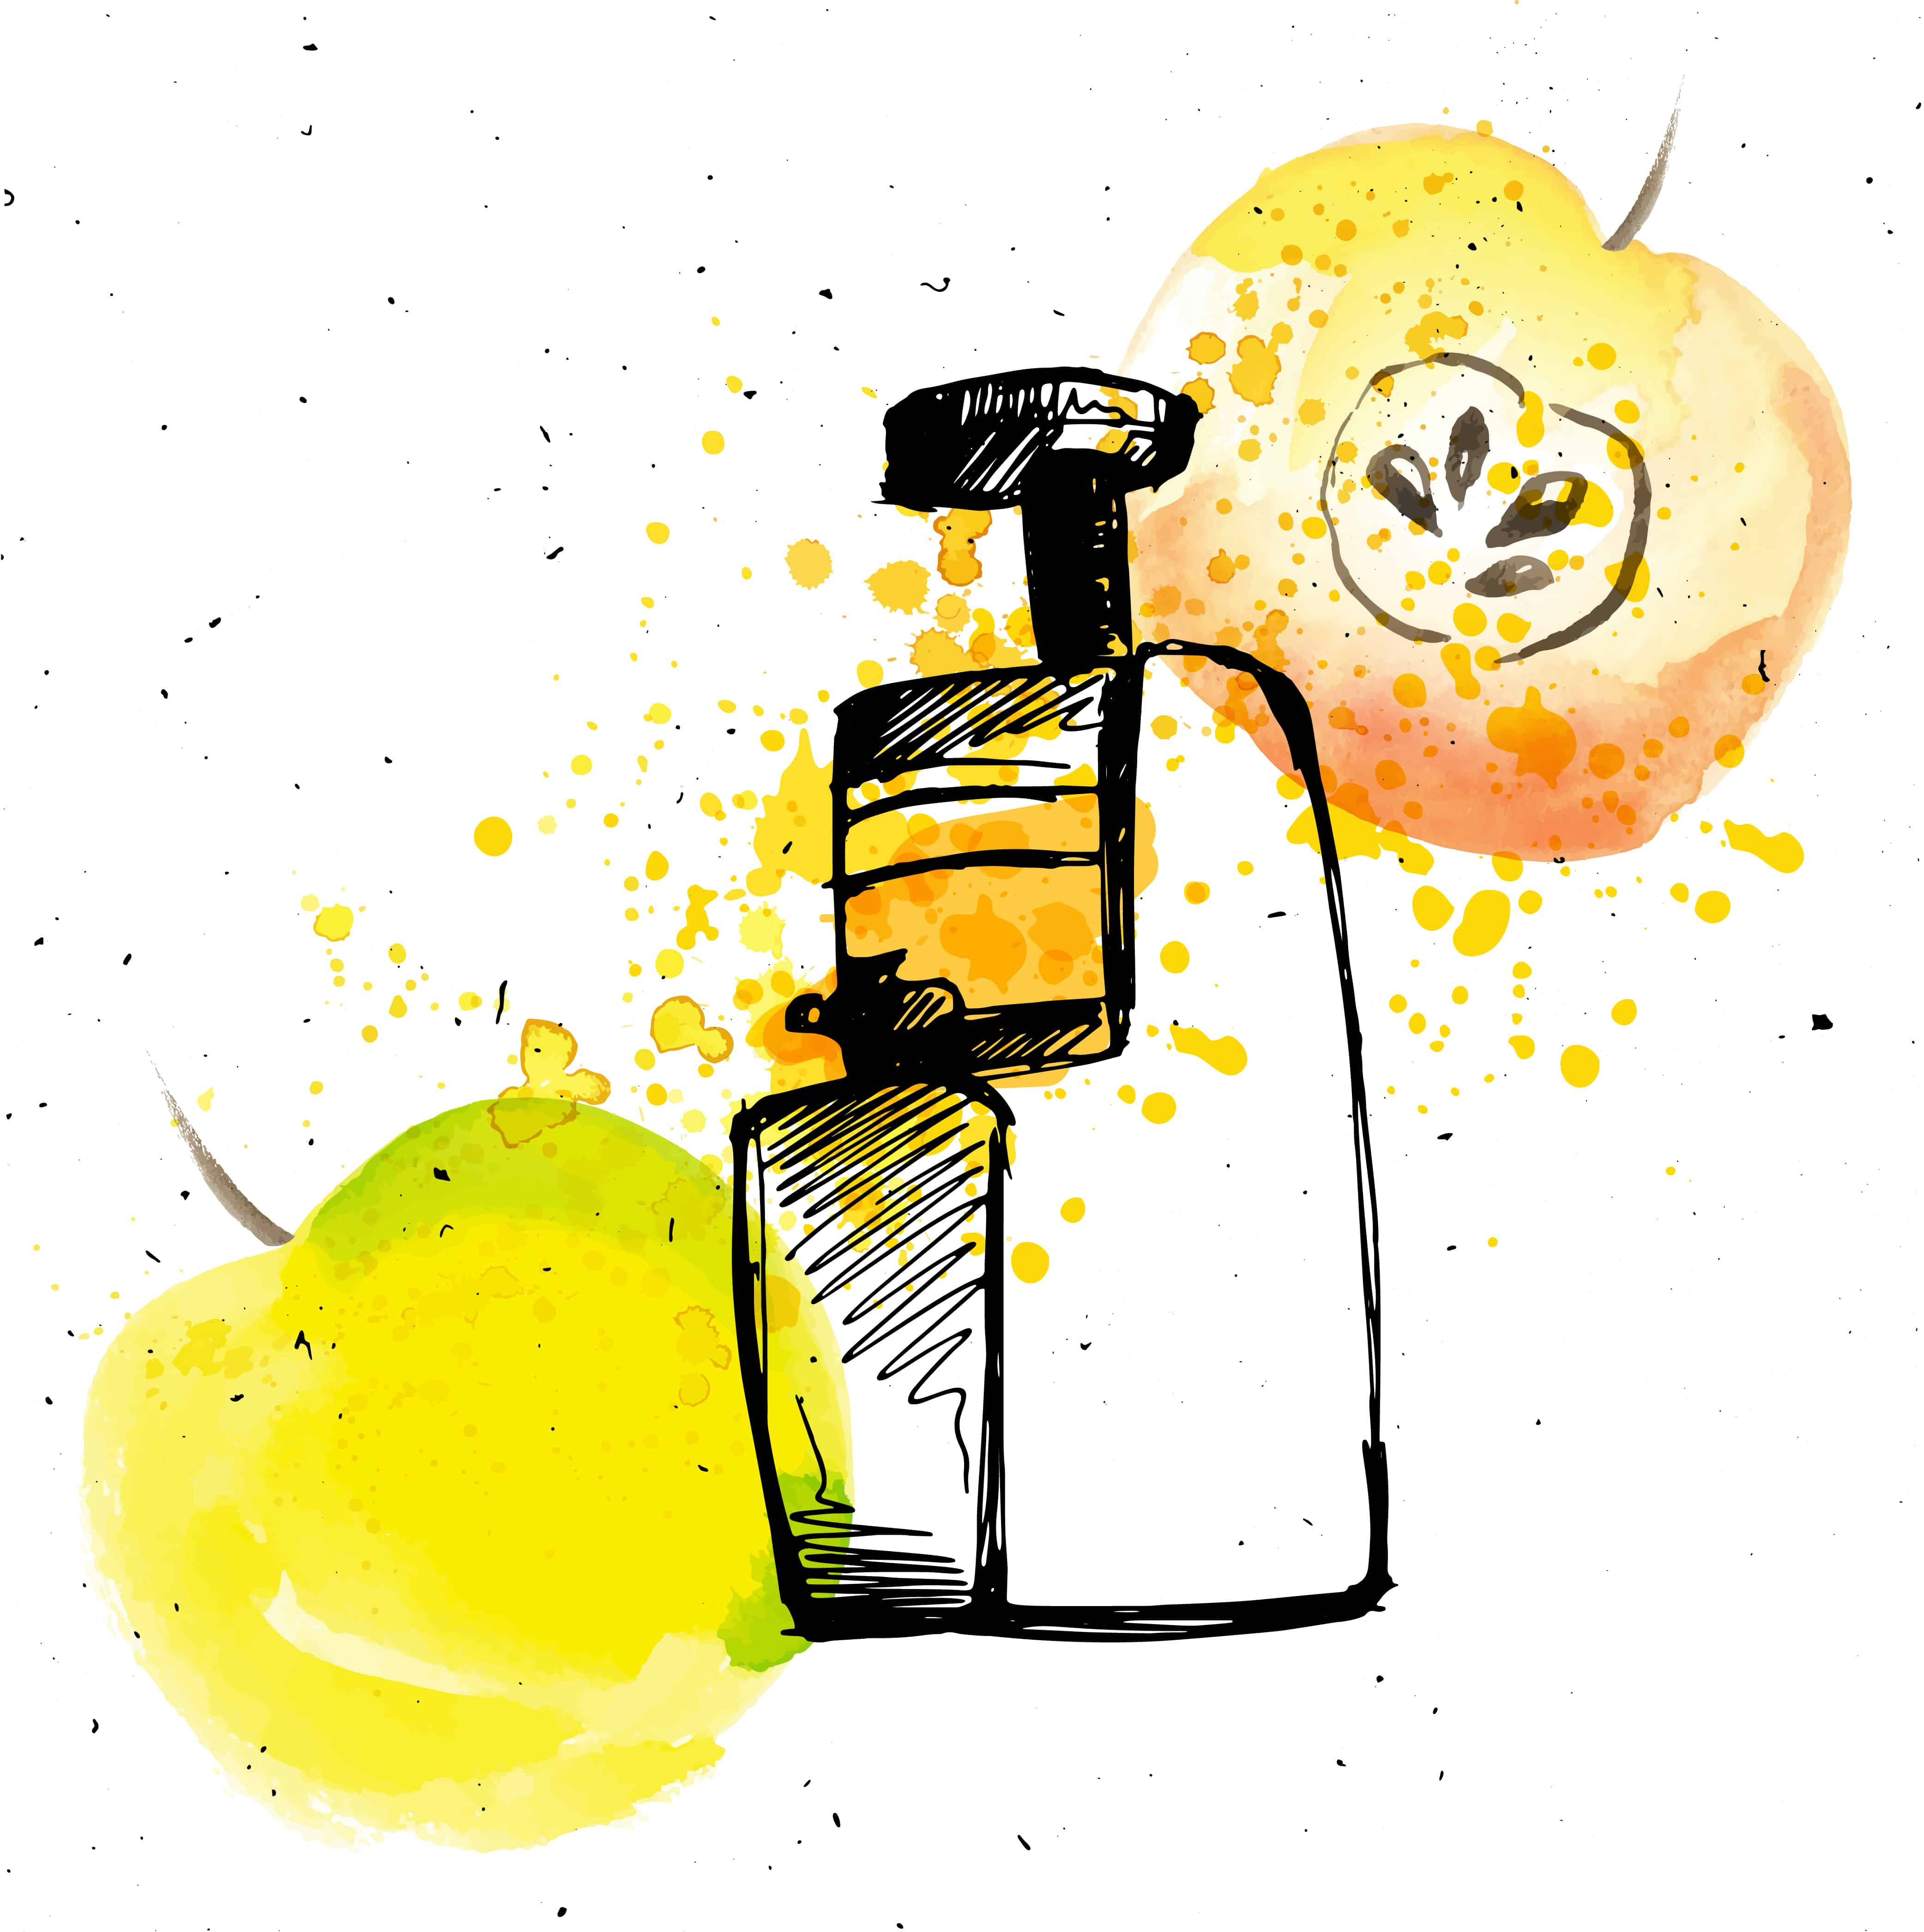 Masticating Juicer with apple. Apple juice with juicer and splashes, sketch hand draw illustration with watercolor elements